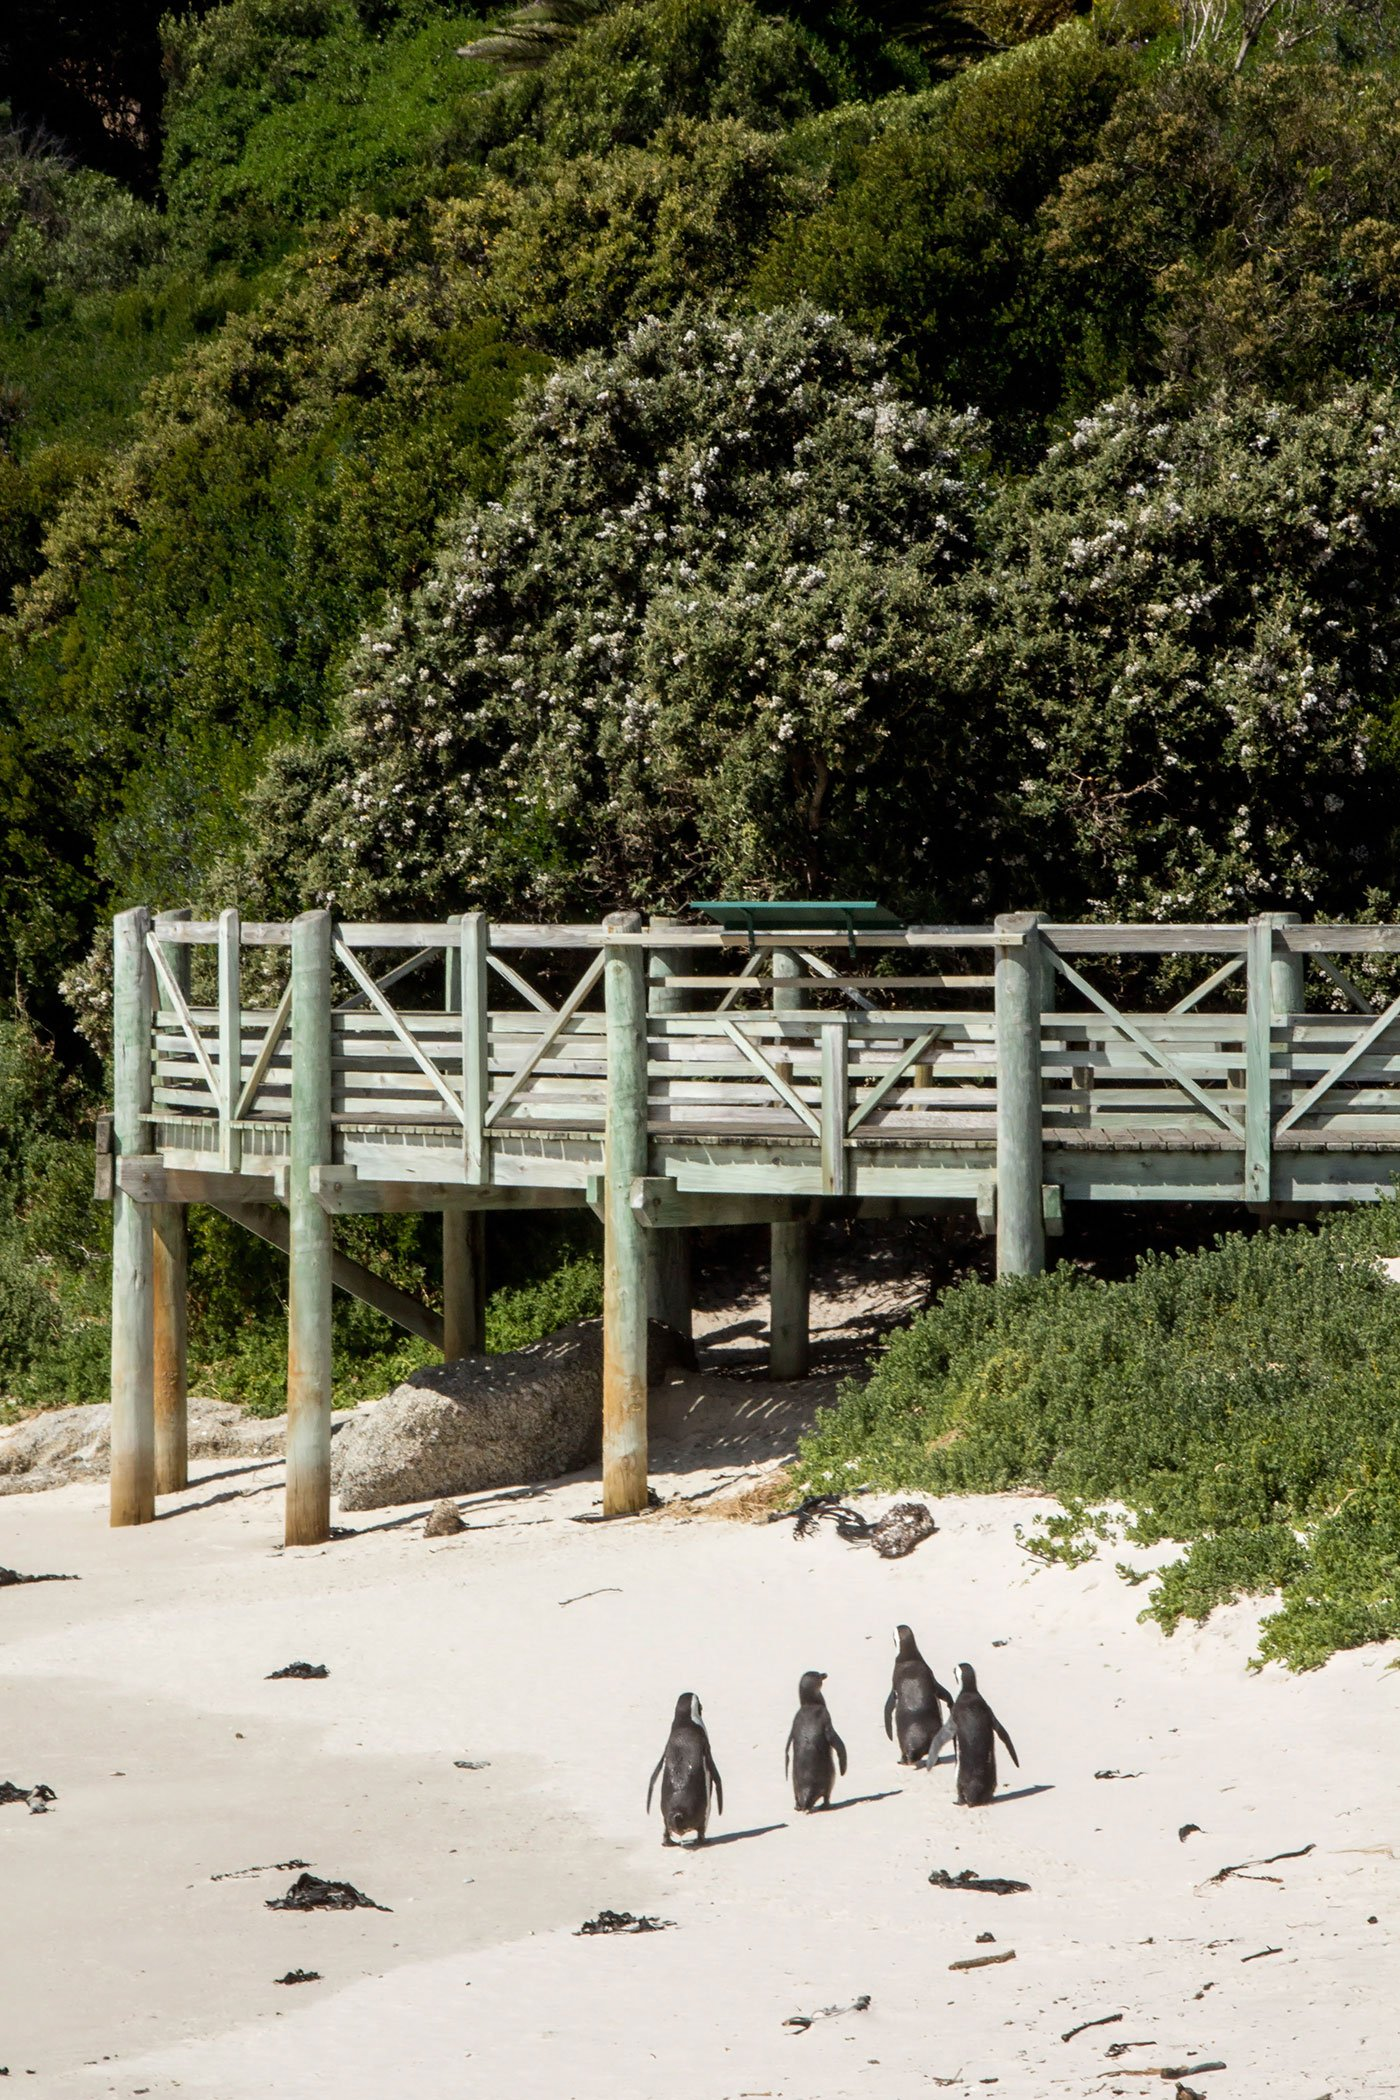 Wine and Wildlife: 3 Day Trips From Cape Town - Visiting the penguins at Boulders Beach